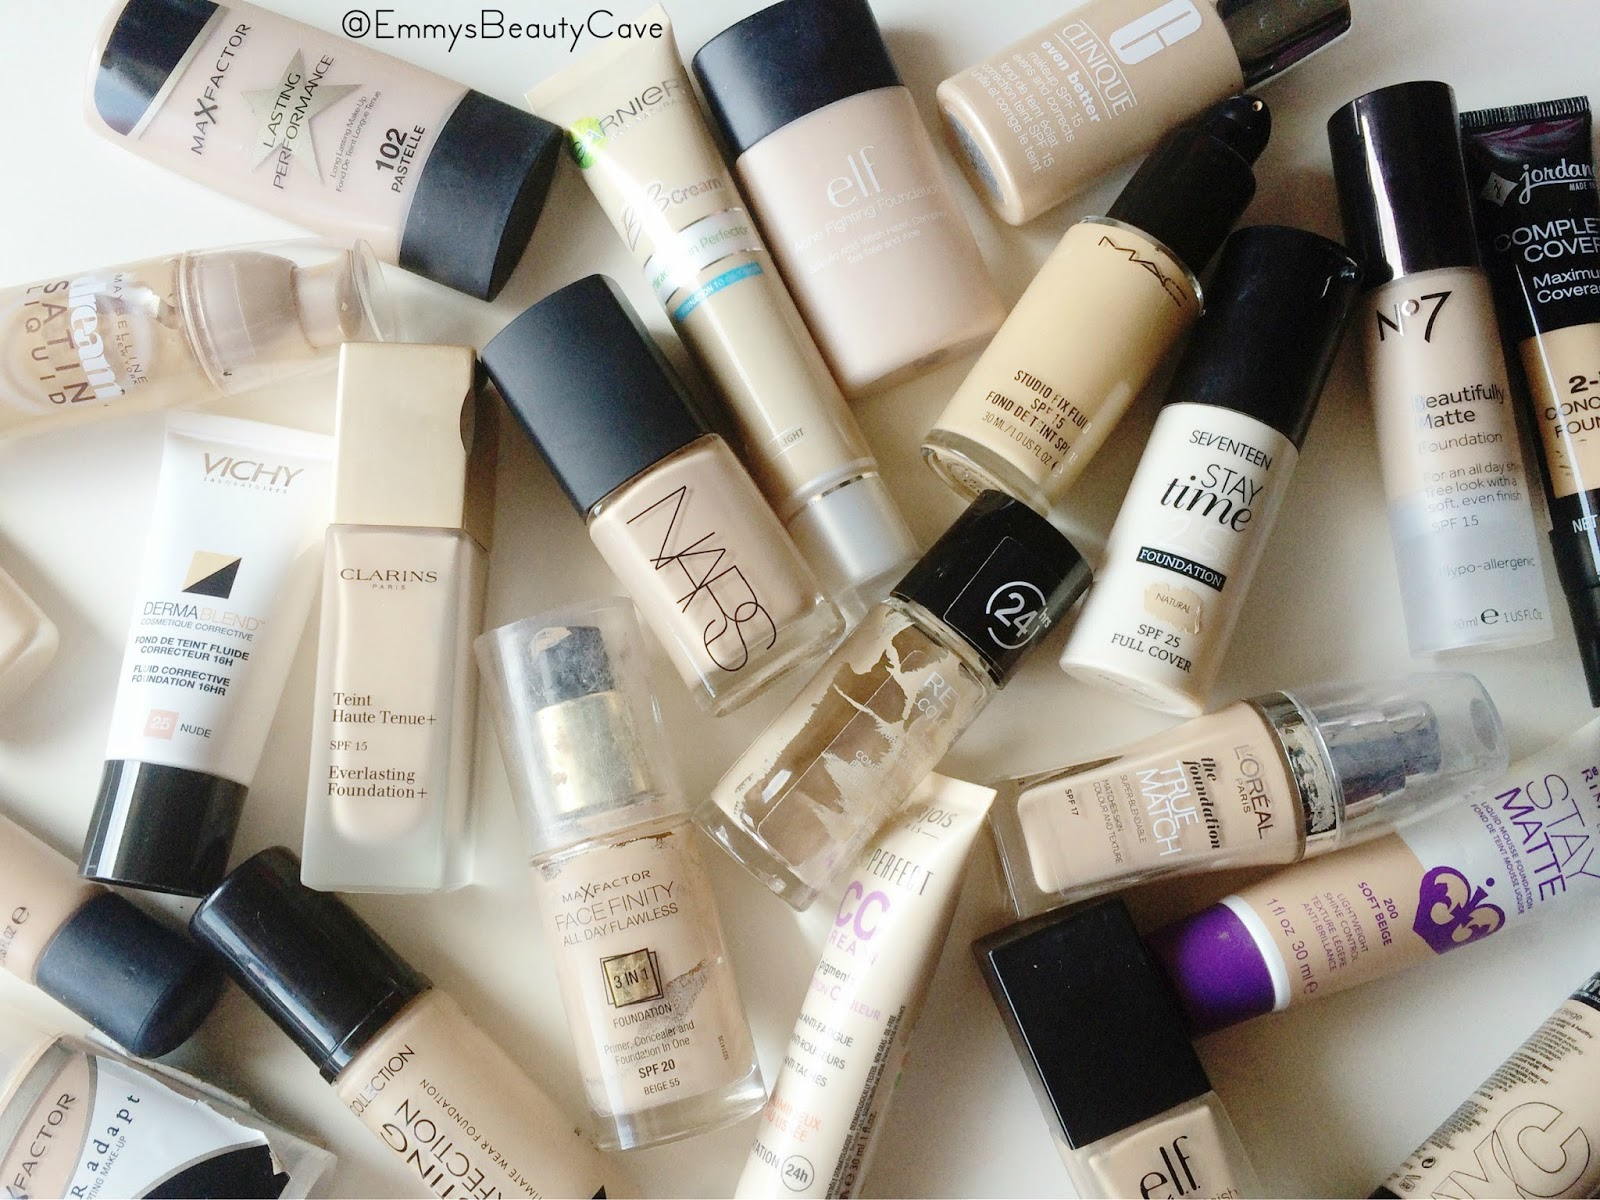 Foundation Best collection pictures 2019